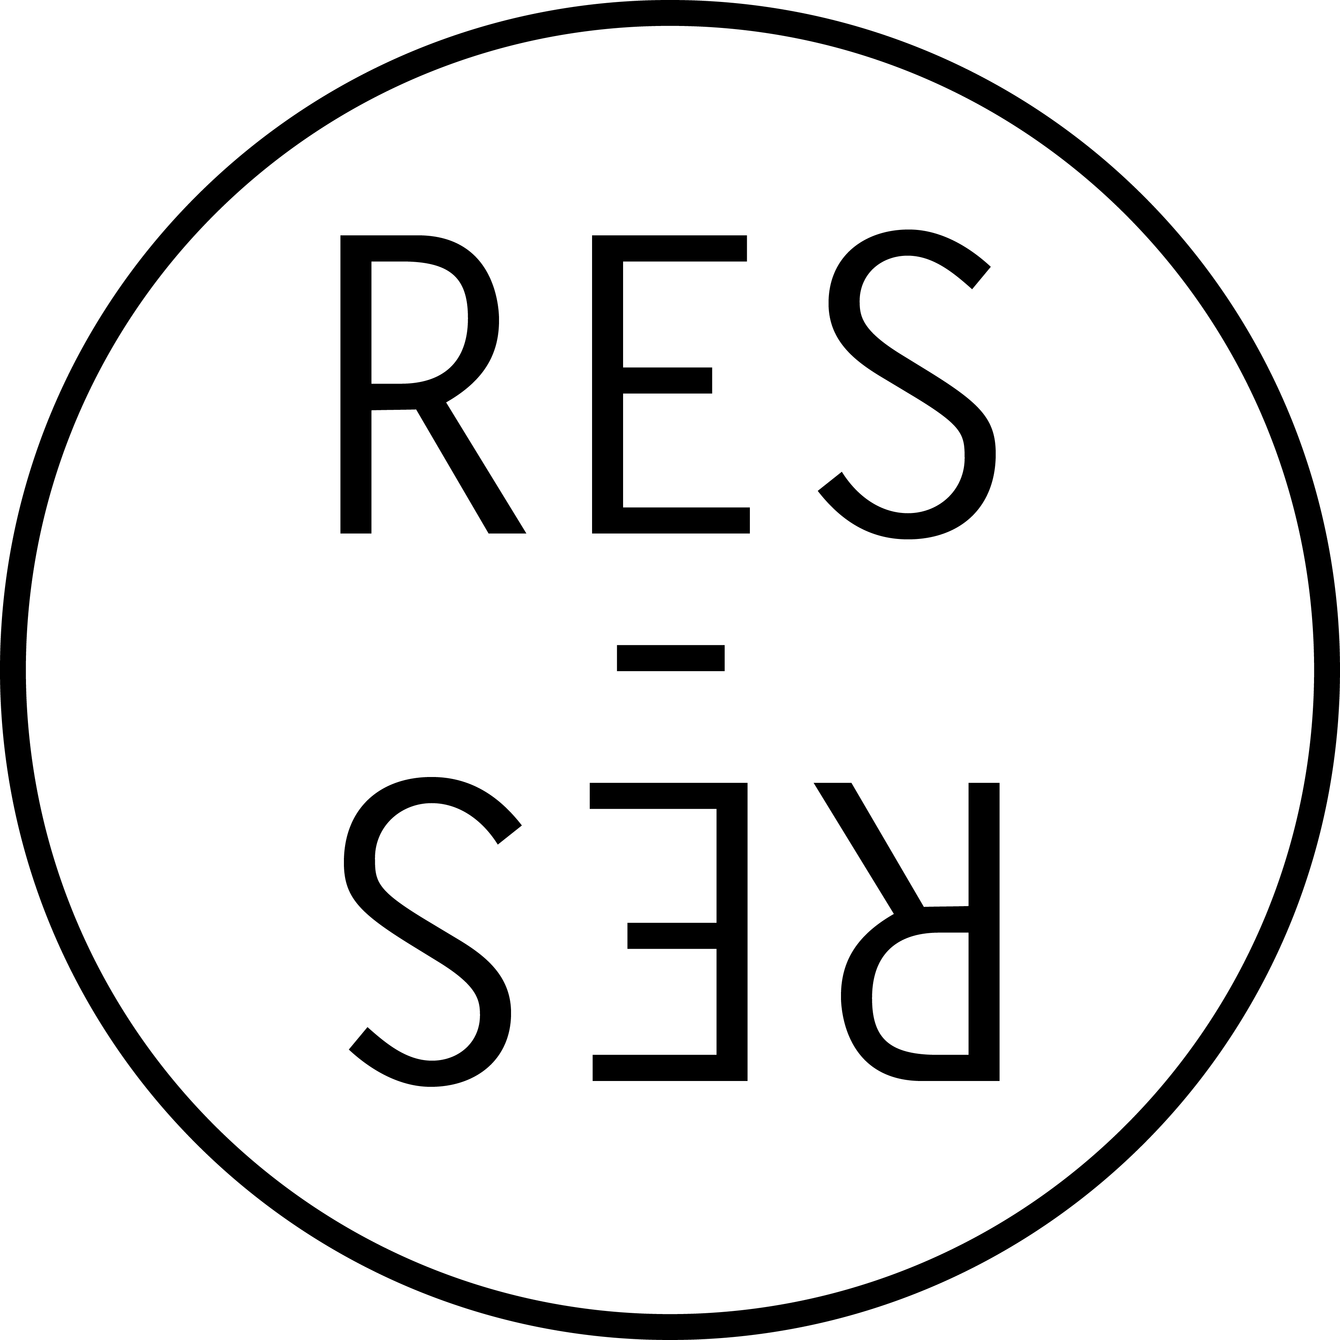 Res-Res